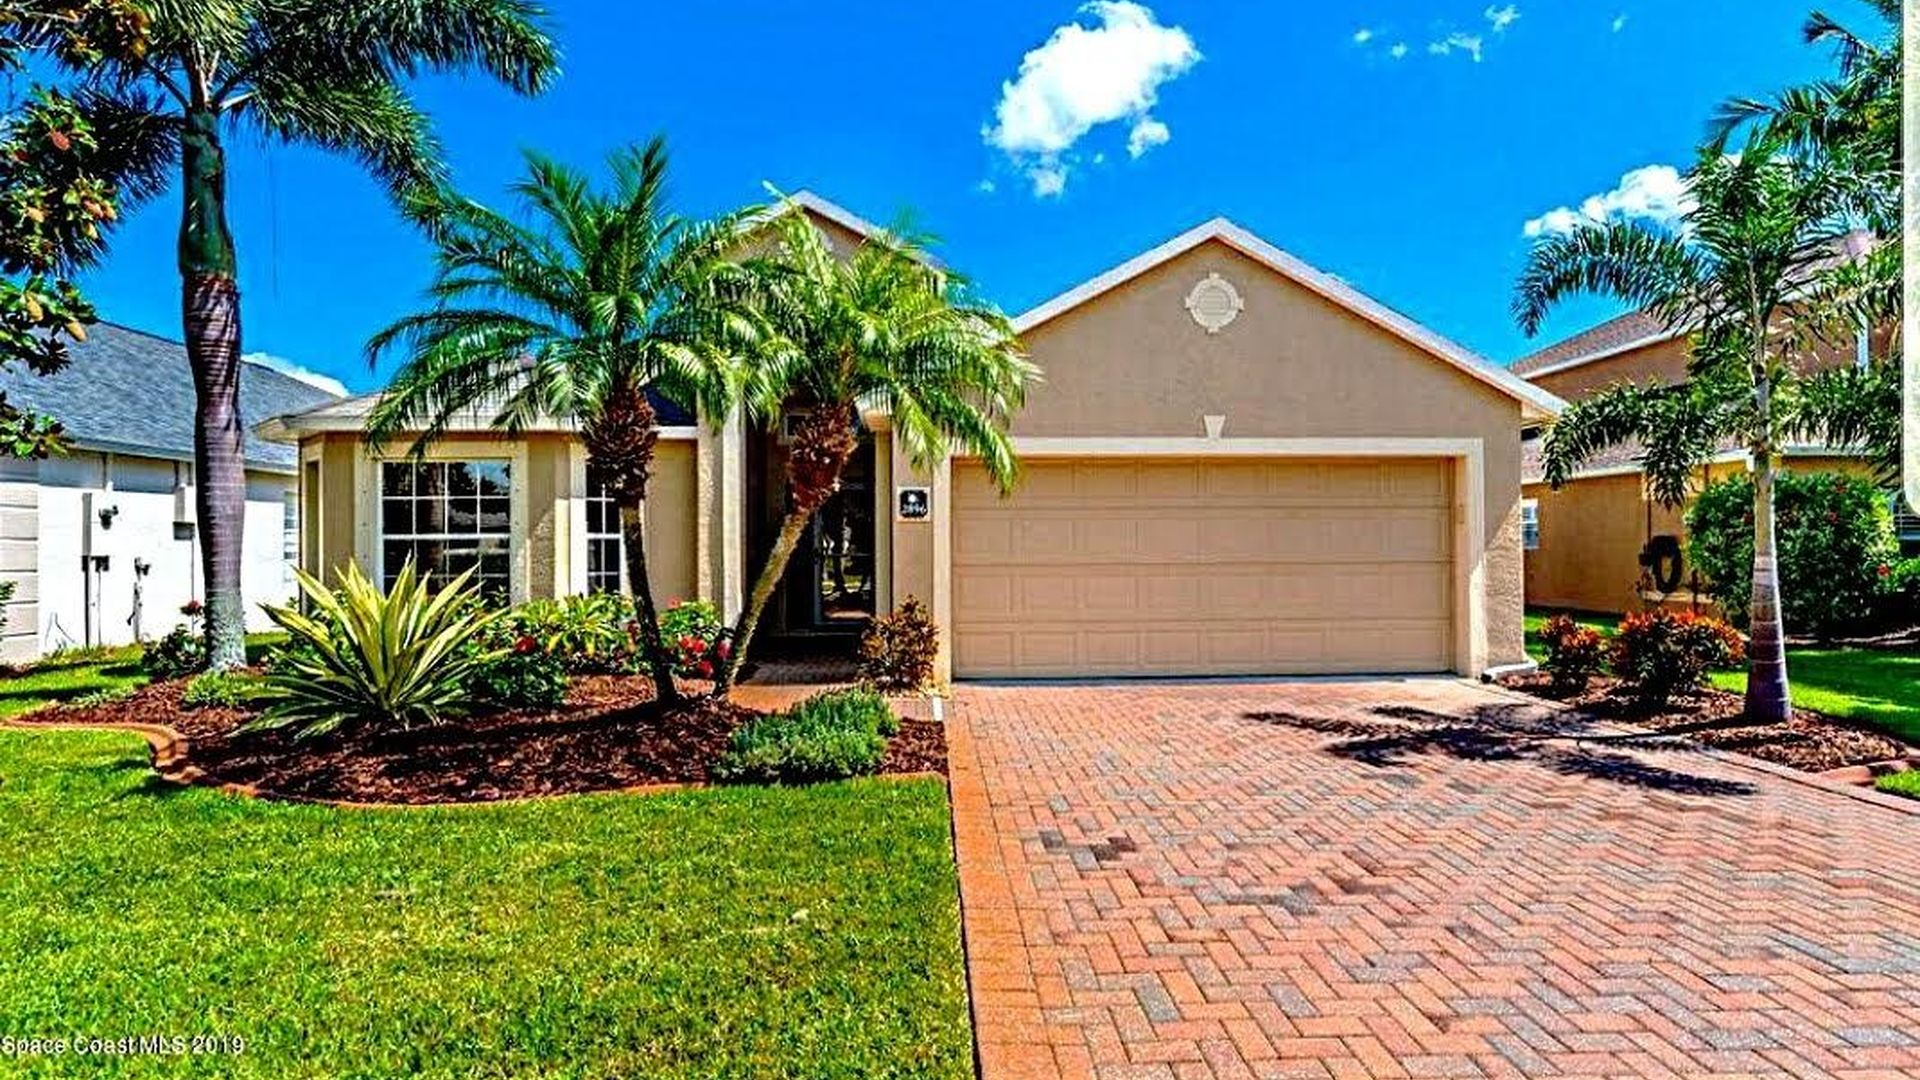 Rental Listings in Viera Melbourne - 48 Rentals | Zillow